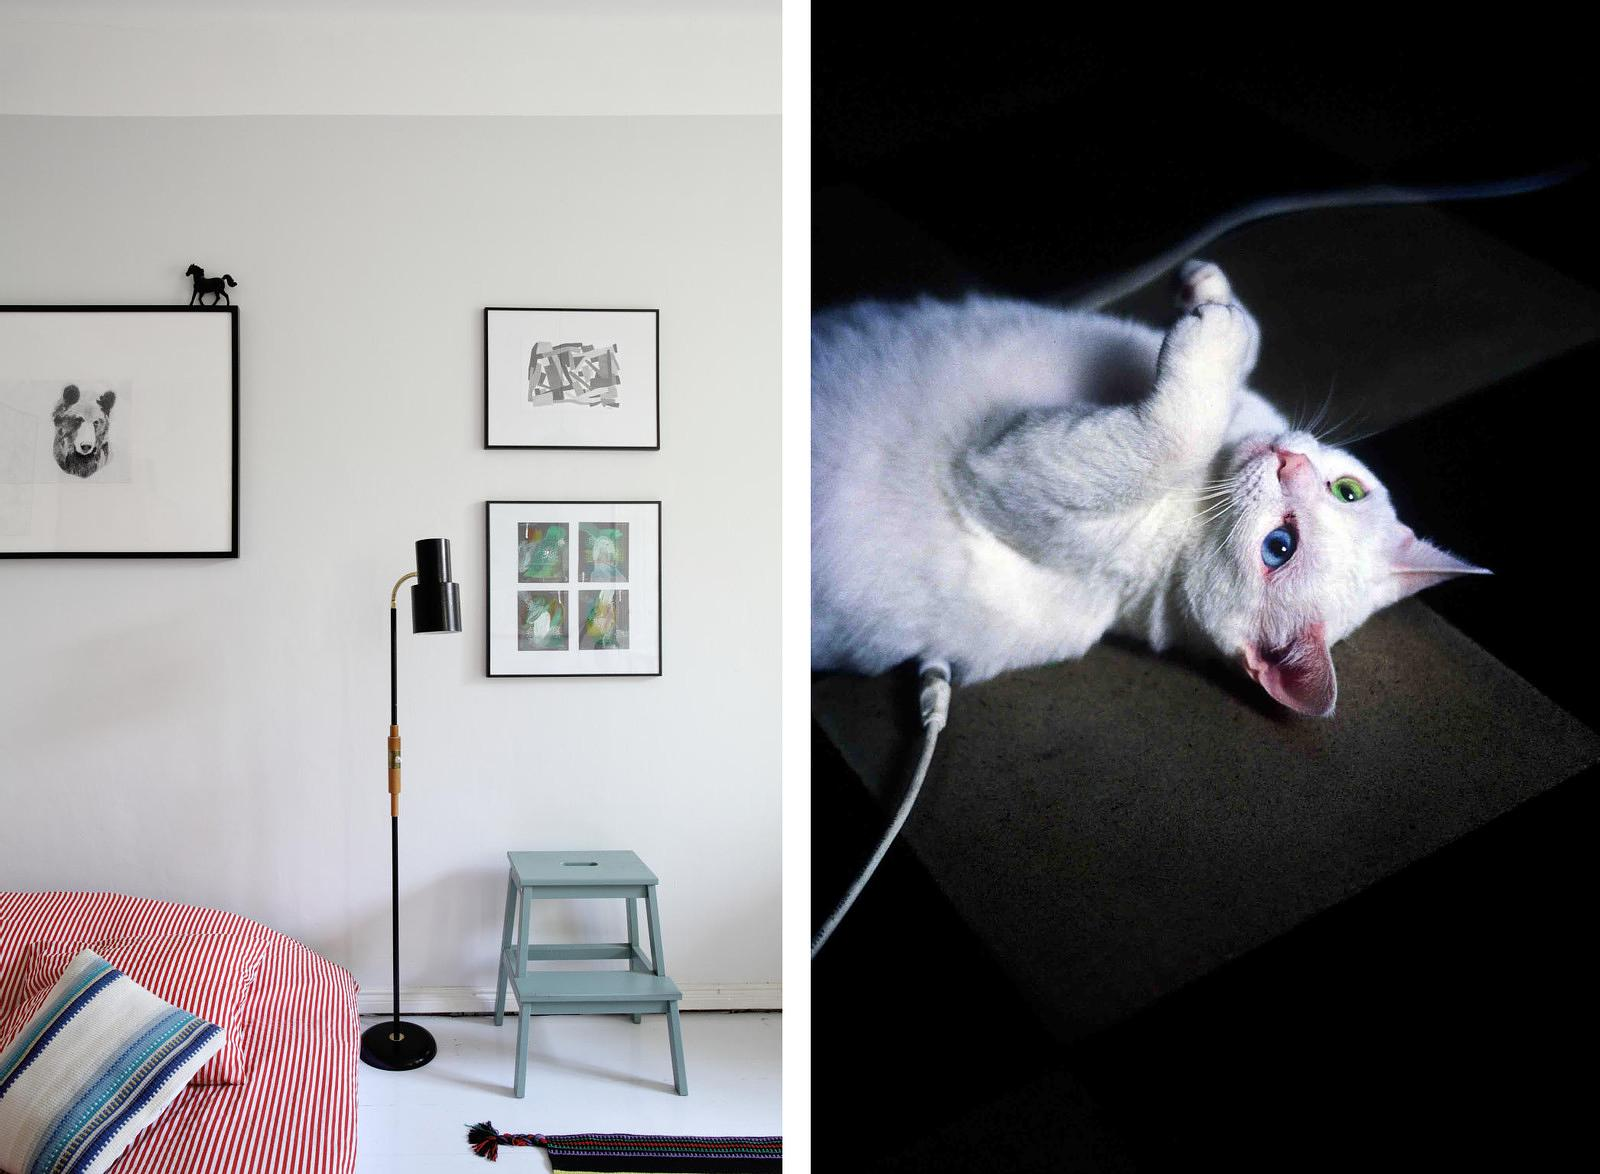 Home of Finnish designer Hanna Anonen - A domestic cat in Turin, Italy